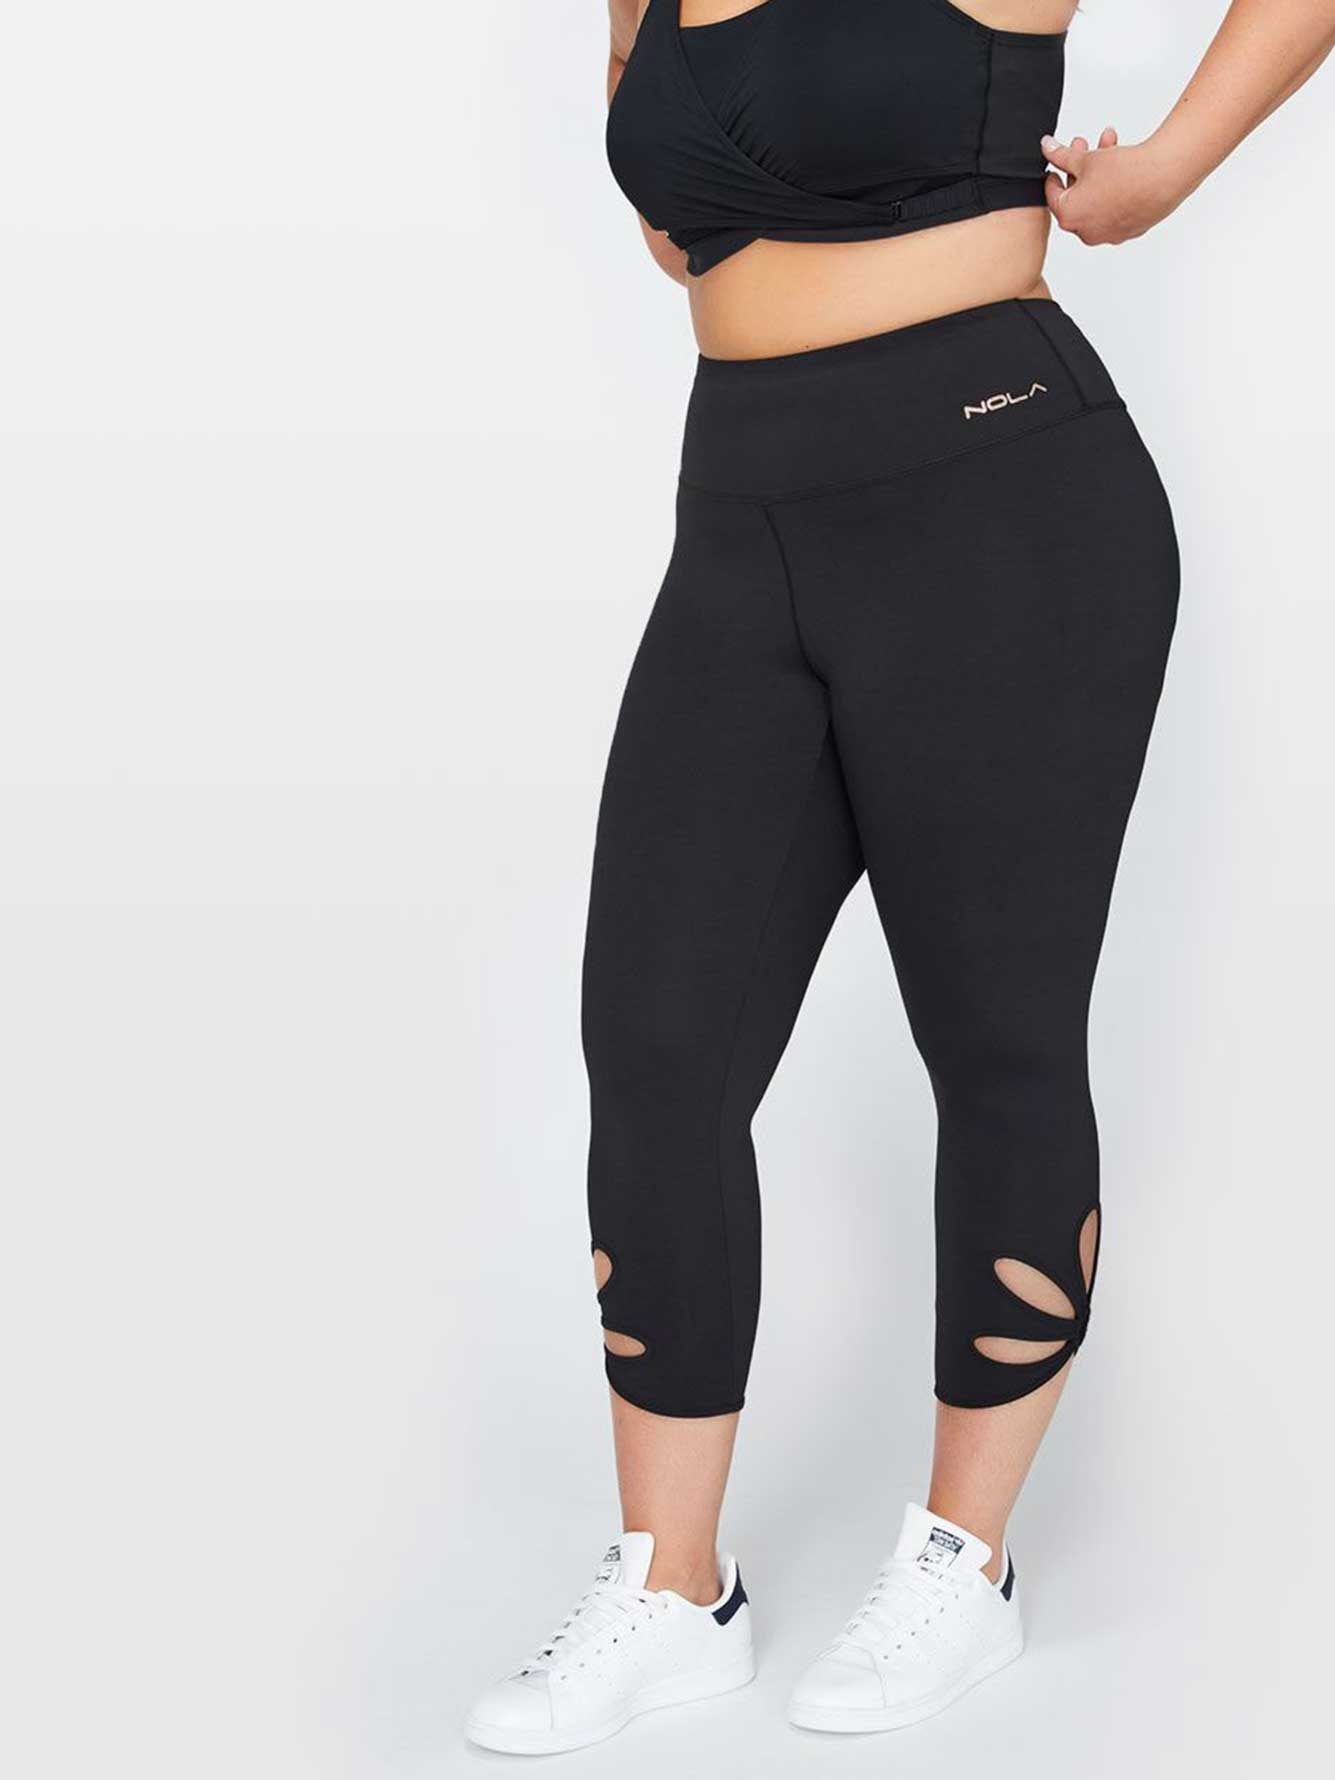 b9268271d8ec8 Nola Performance Capri Legging | Addition Elle